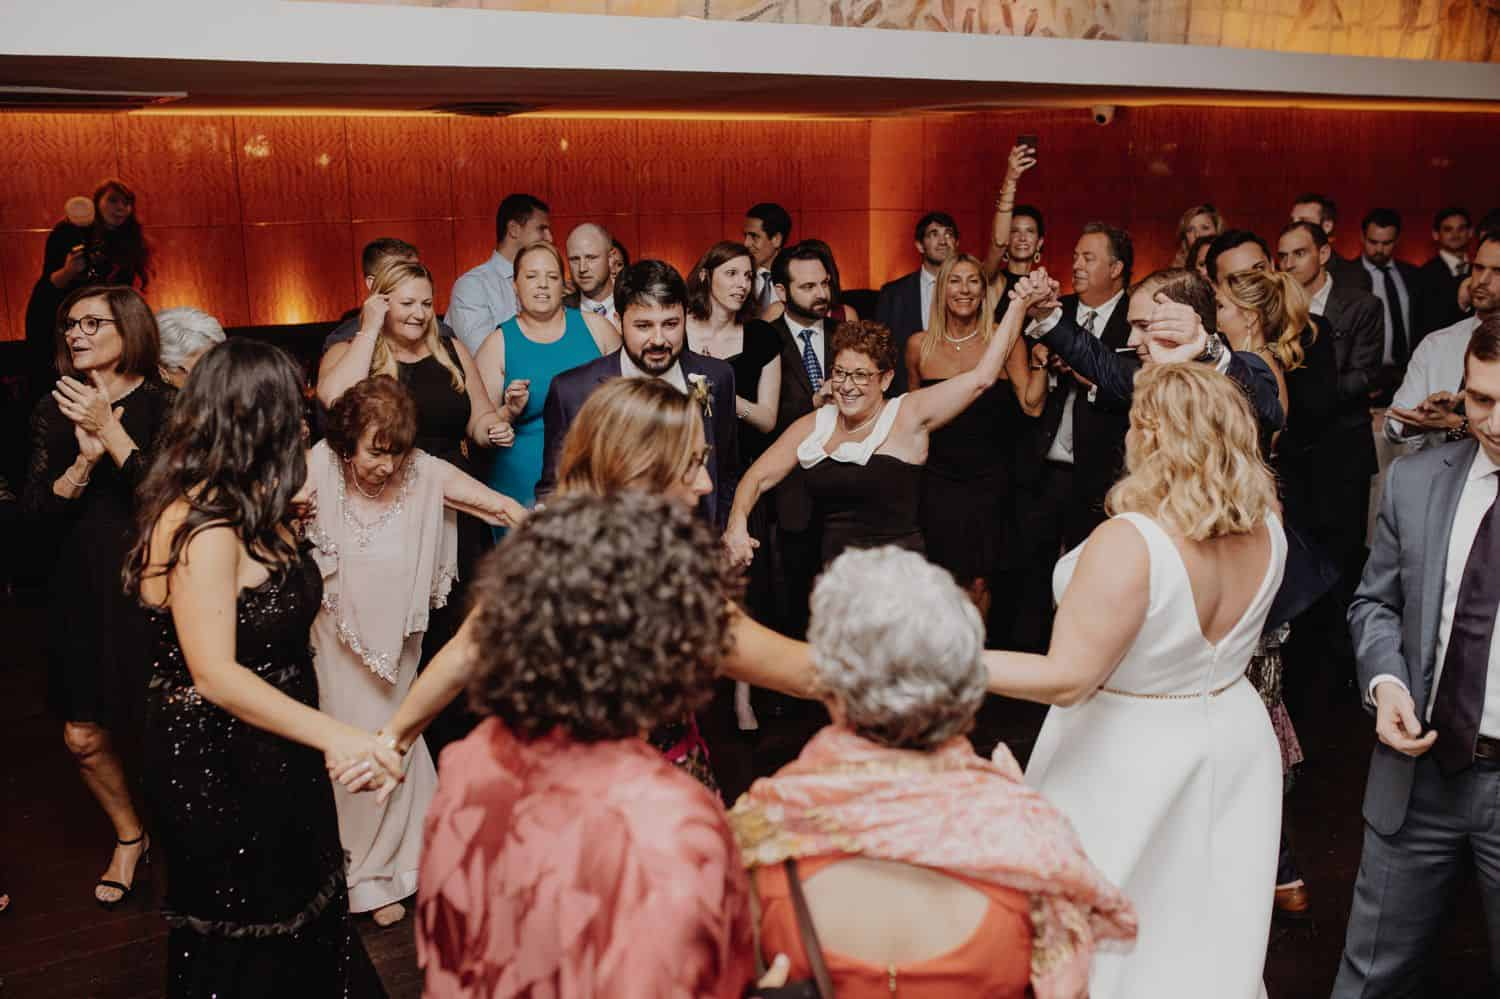 Family and friends dance the horah at a wedding